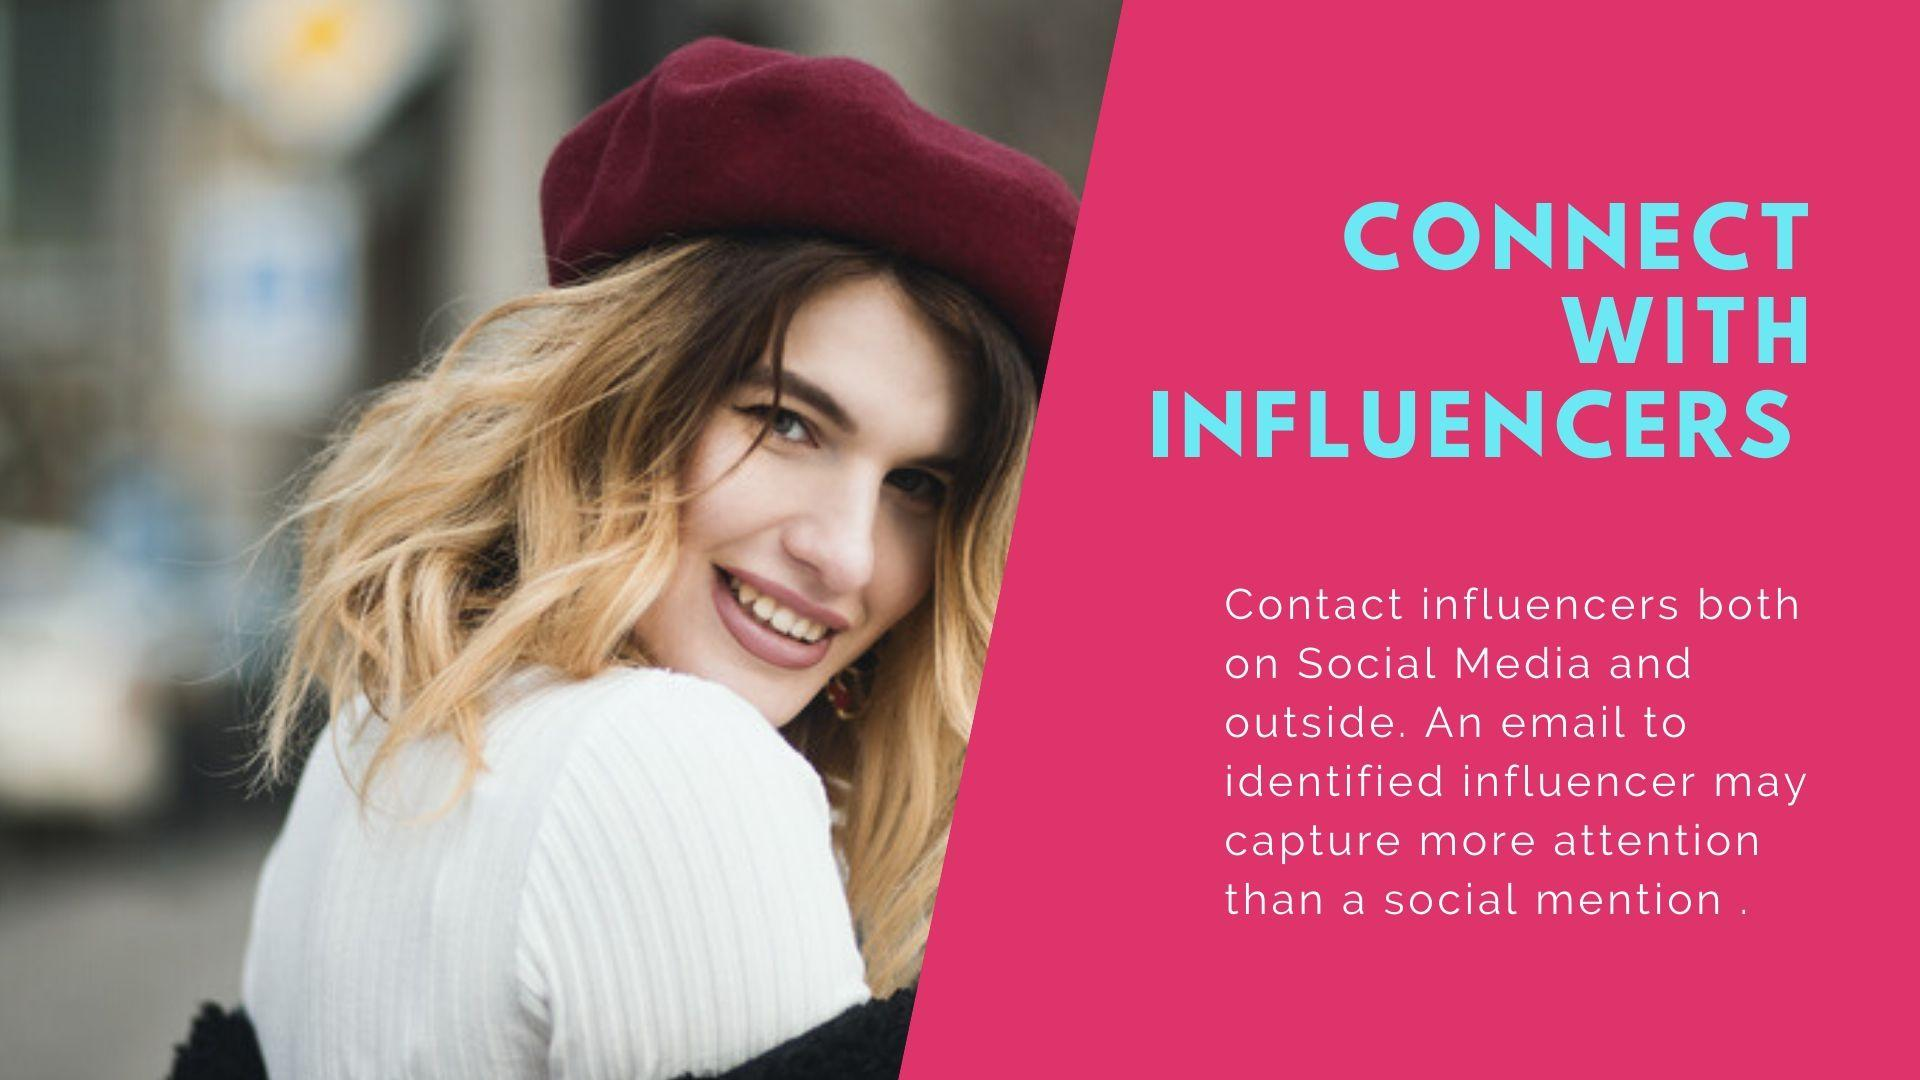 Content - Connect with influencers